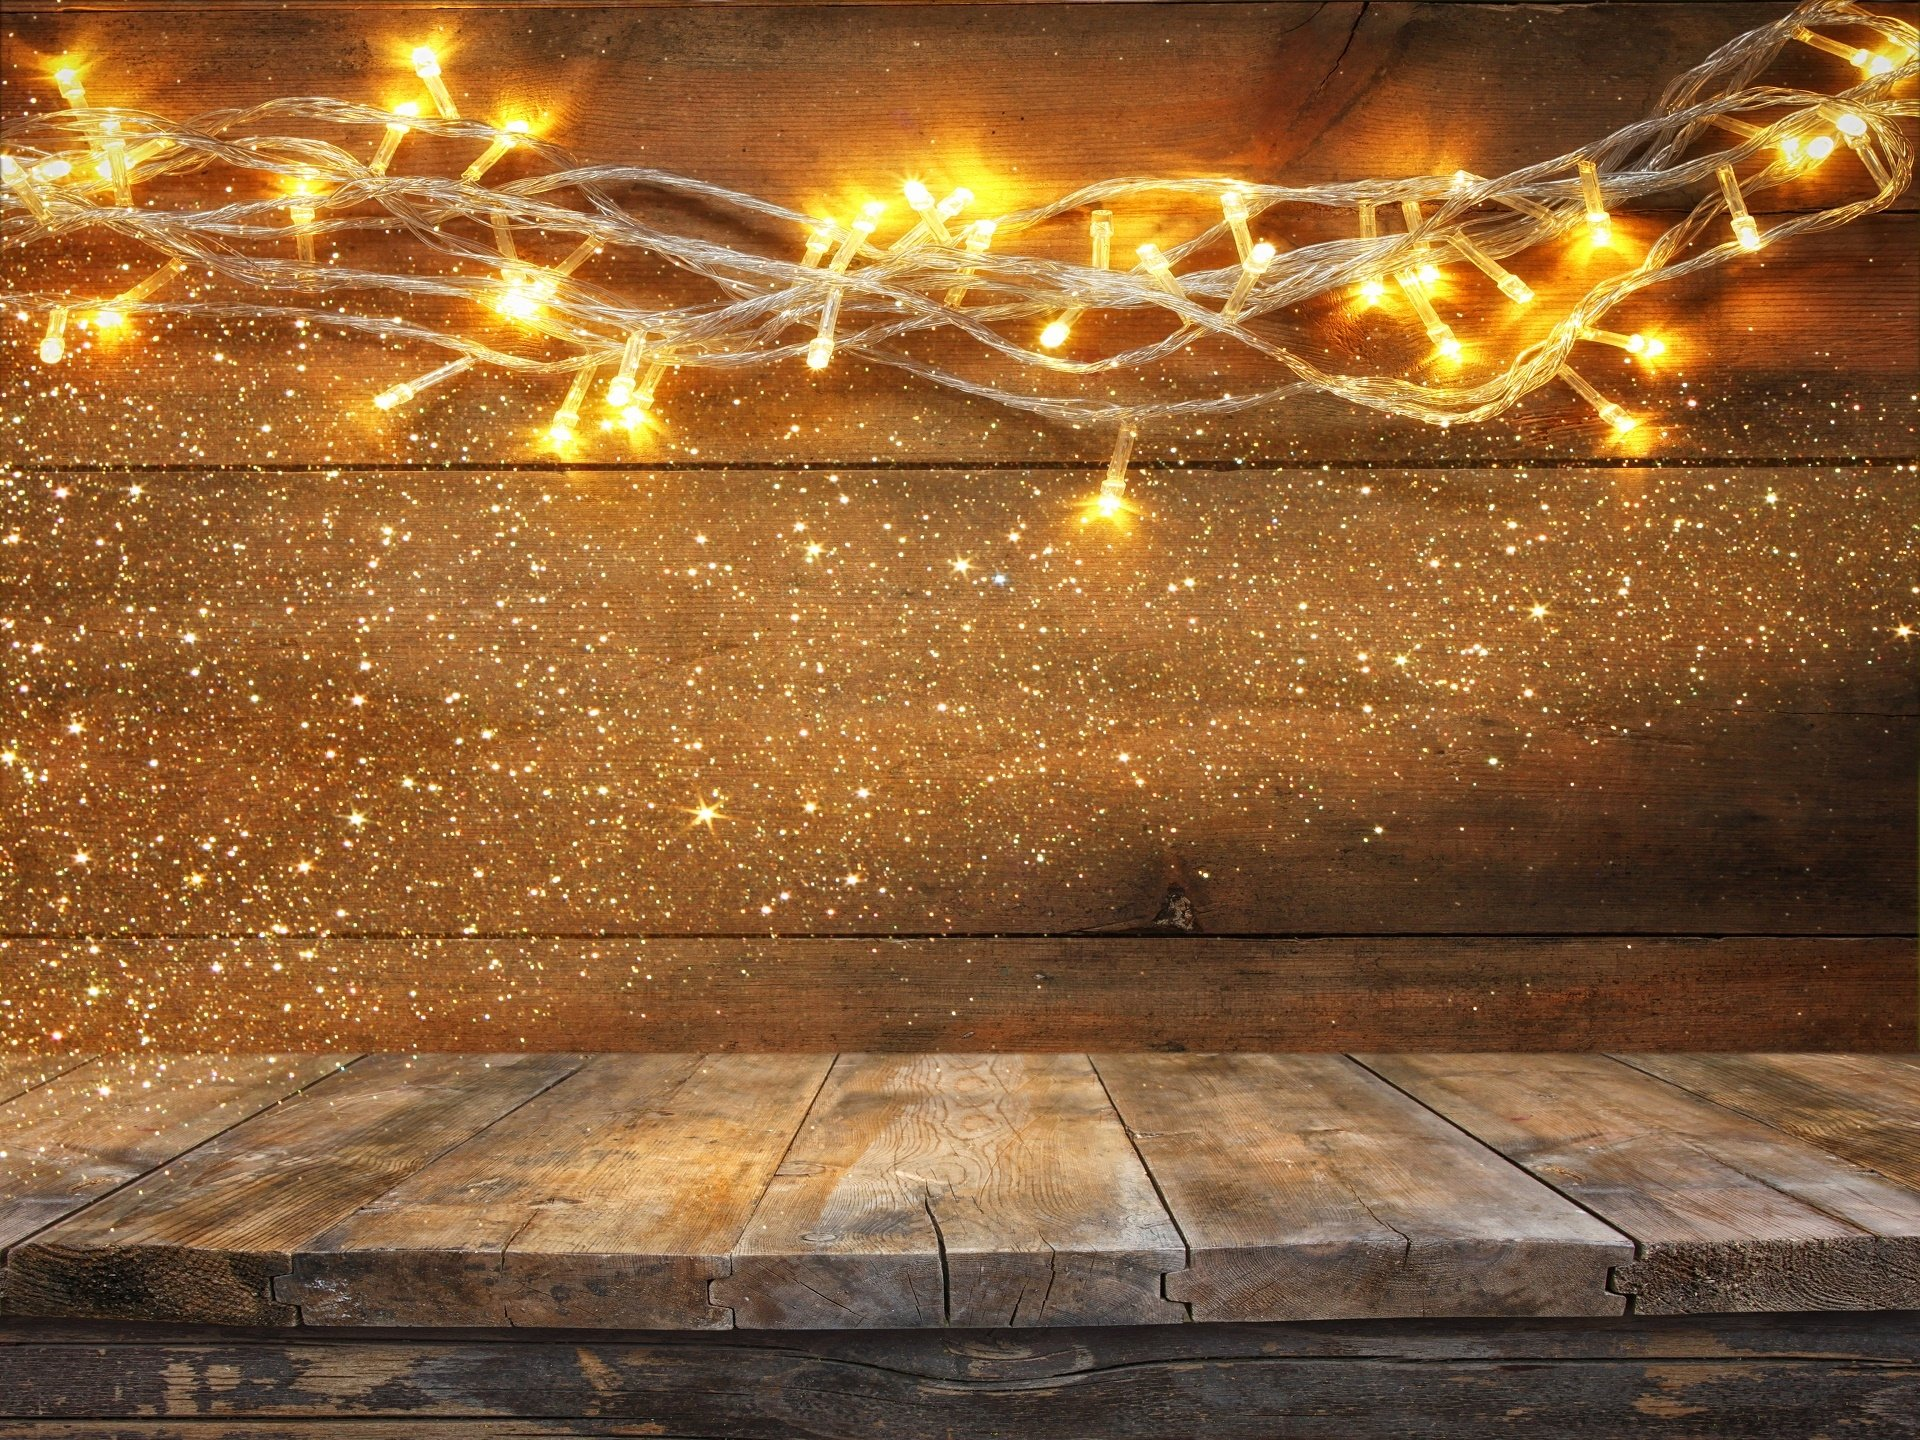 Wall Covering Christmas Lights : Christmas Full HD Wallpaper and Background 1920x1440 ID:670618